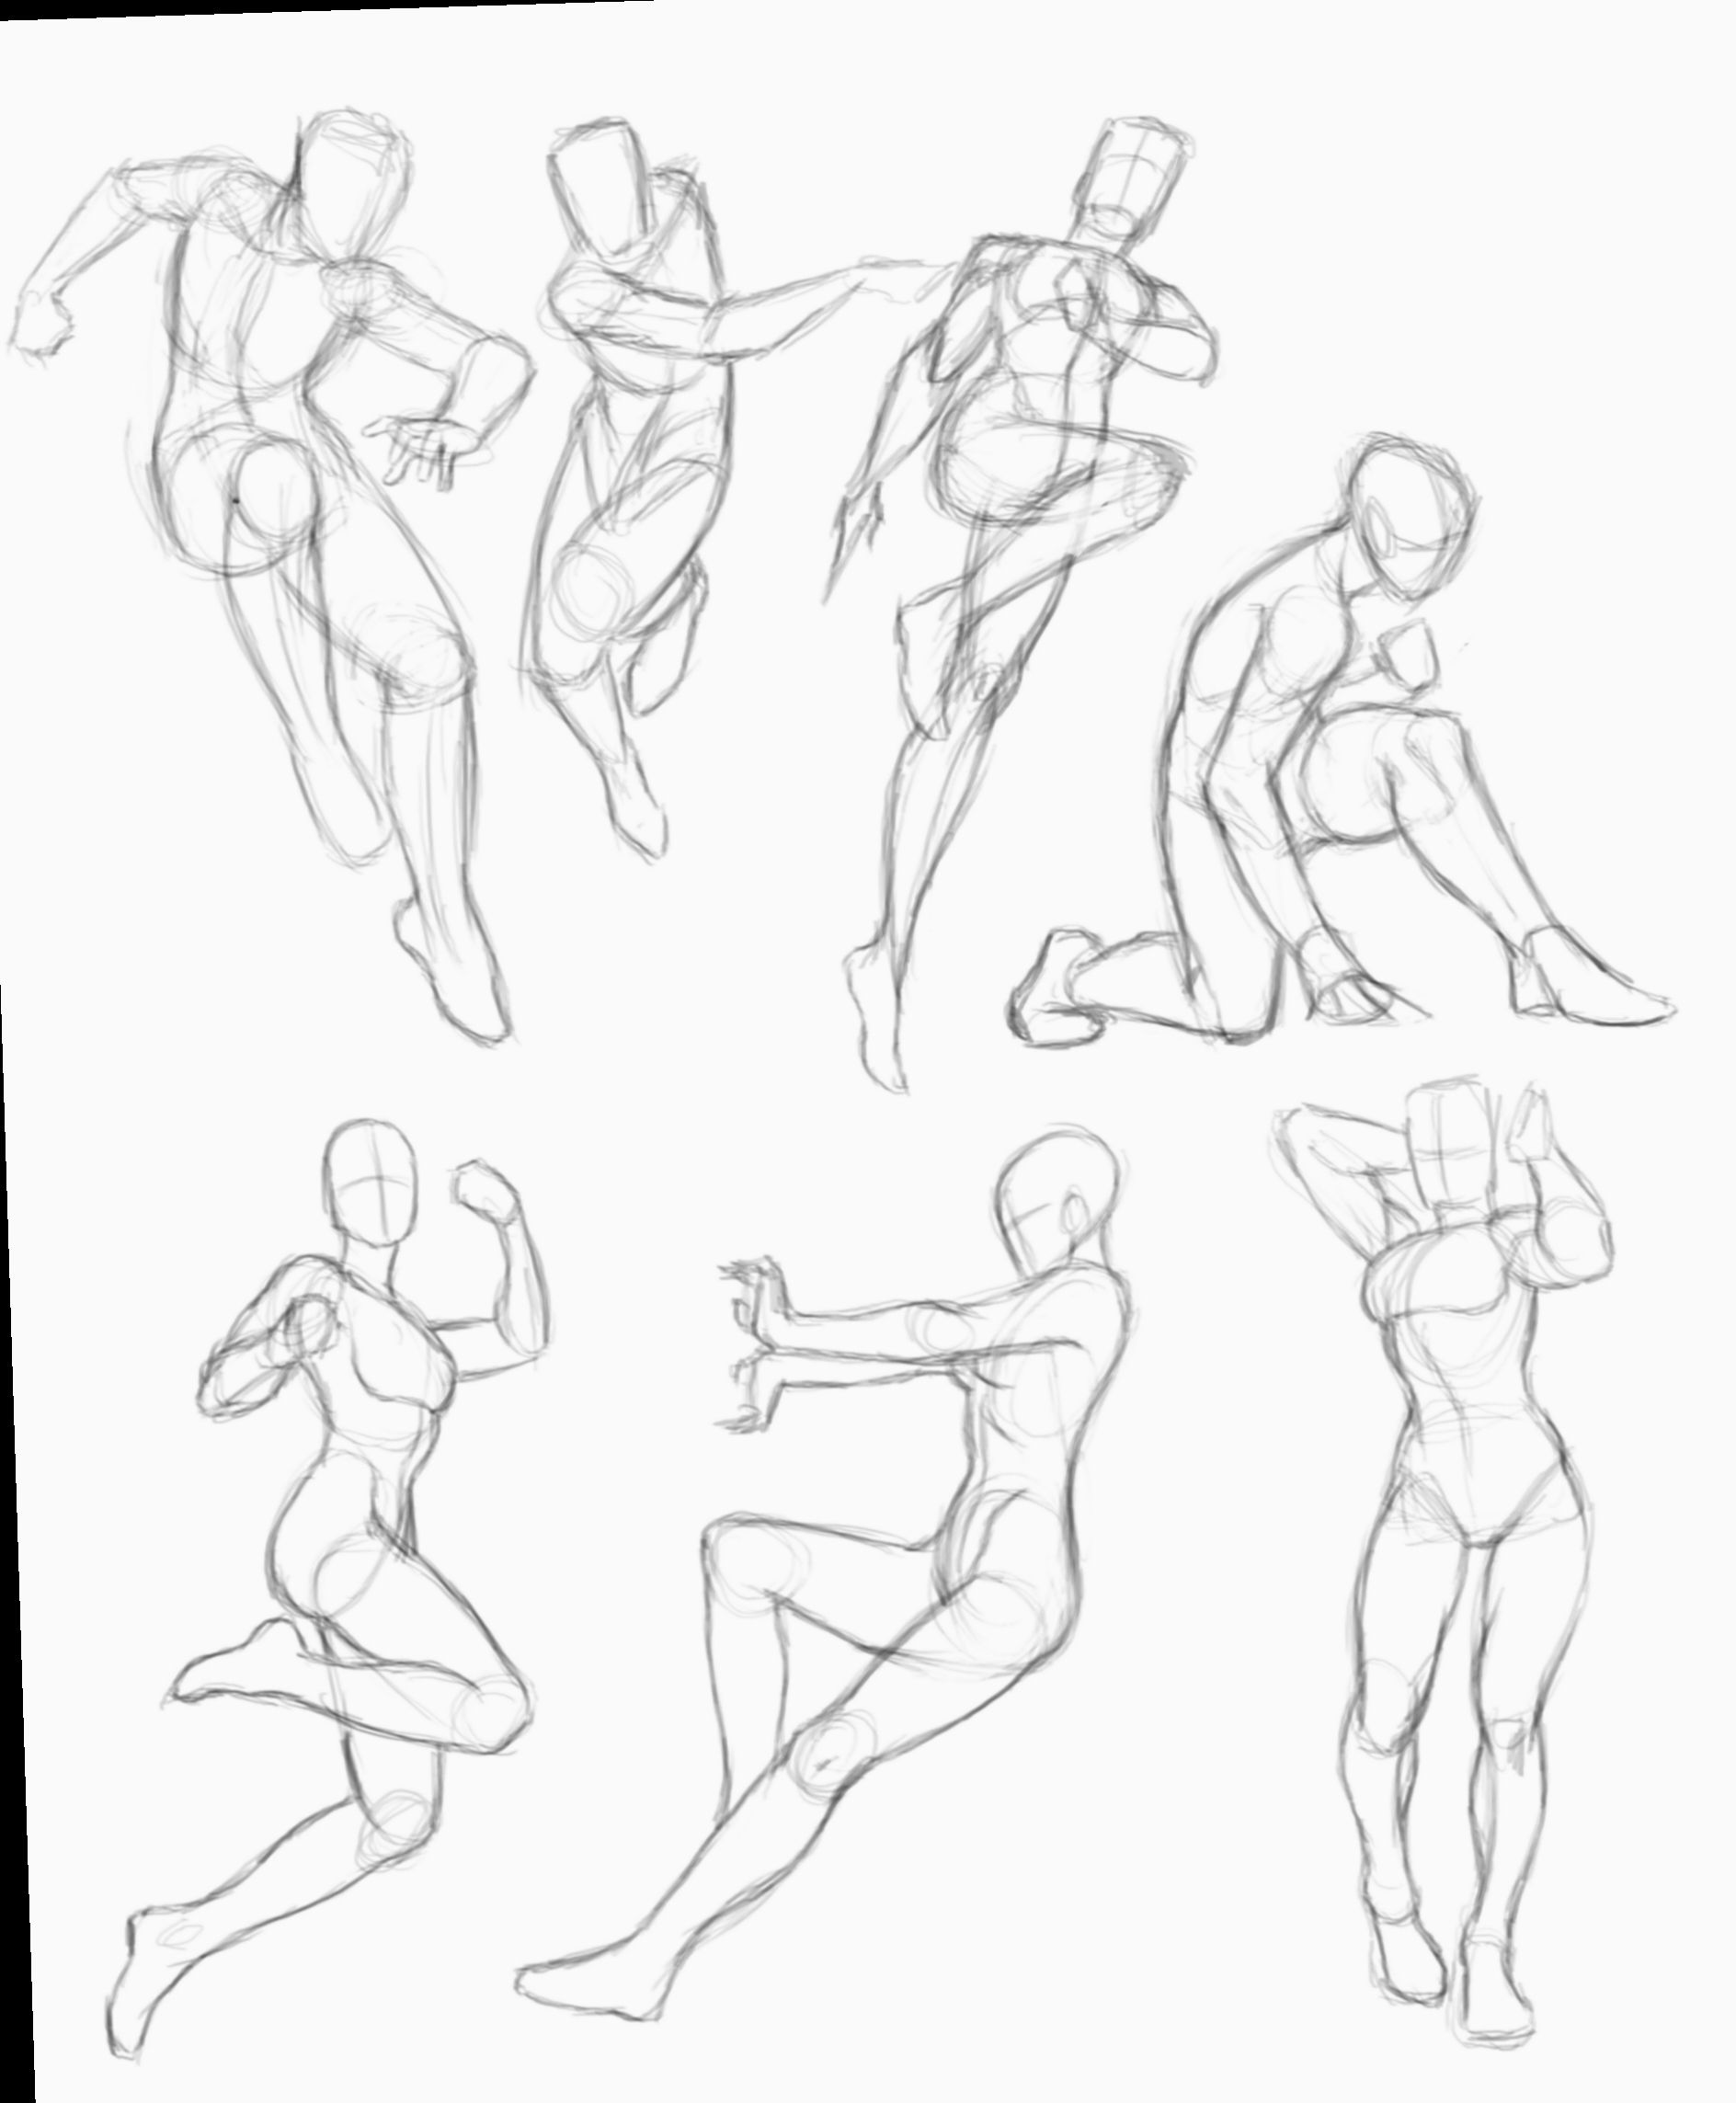 20 Anime Sketch Manga Action Poses In 2020 Art Reference Art Poses Art Reference Photos